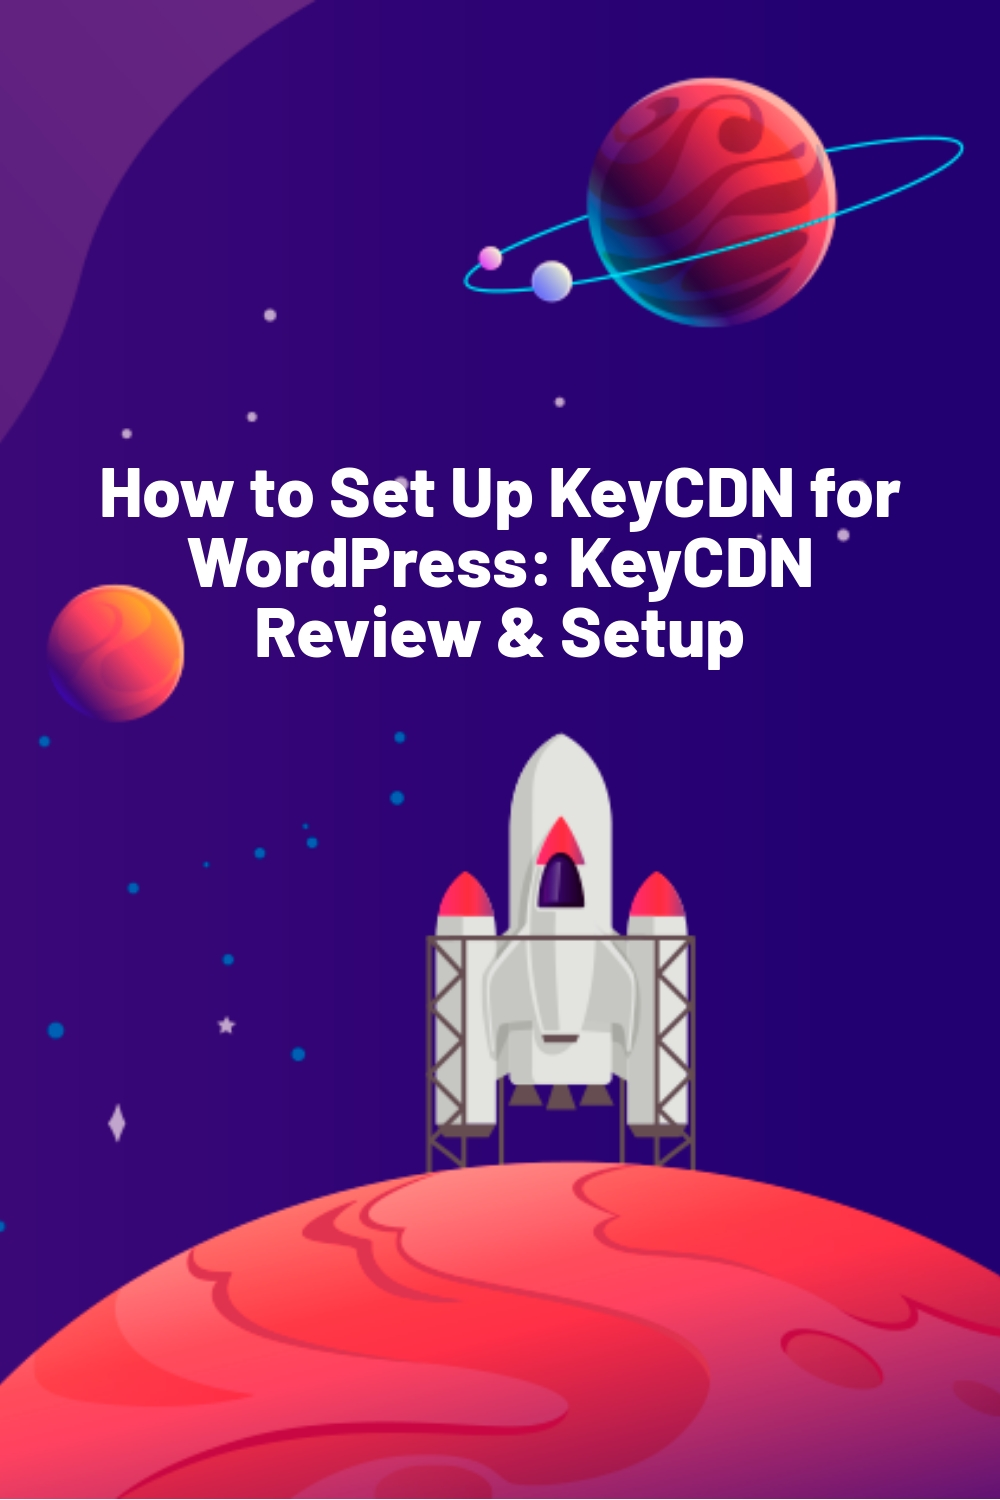 How to Set Up KeyCDN for WordPress: KeyCDN Review & Setup